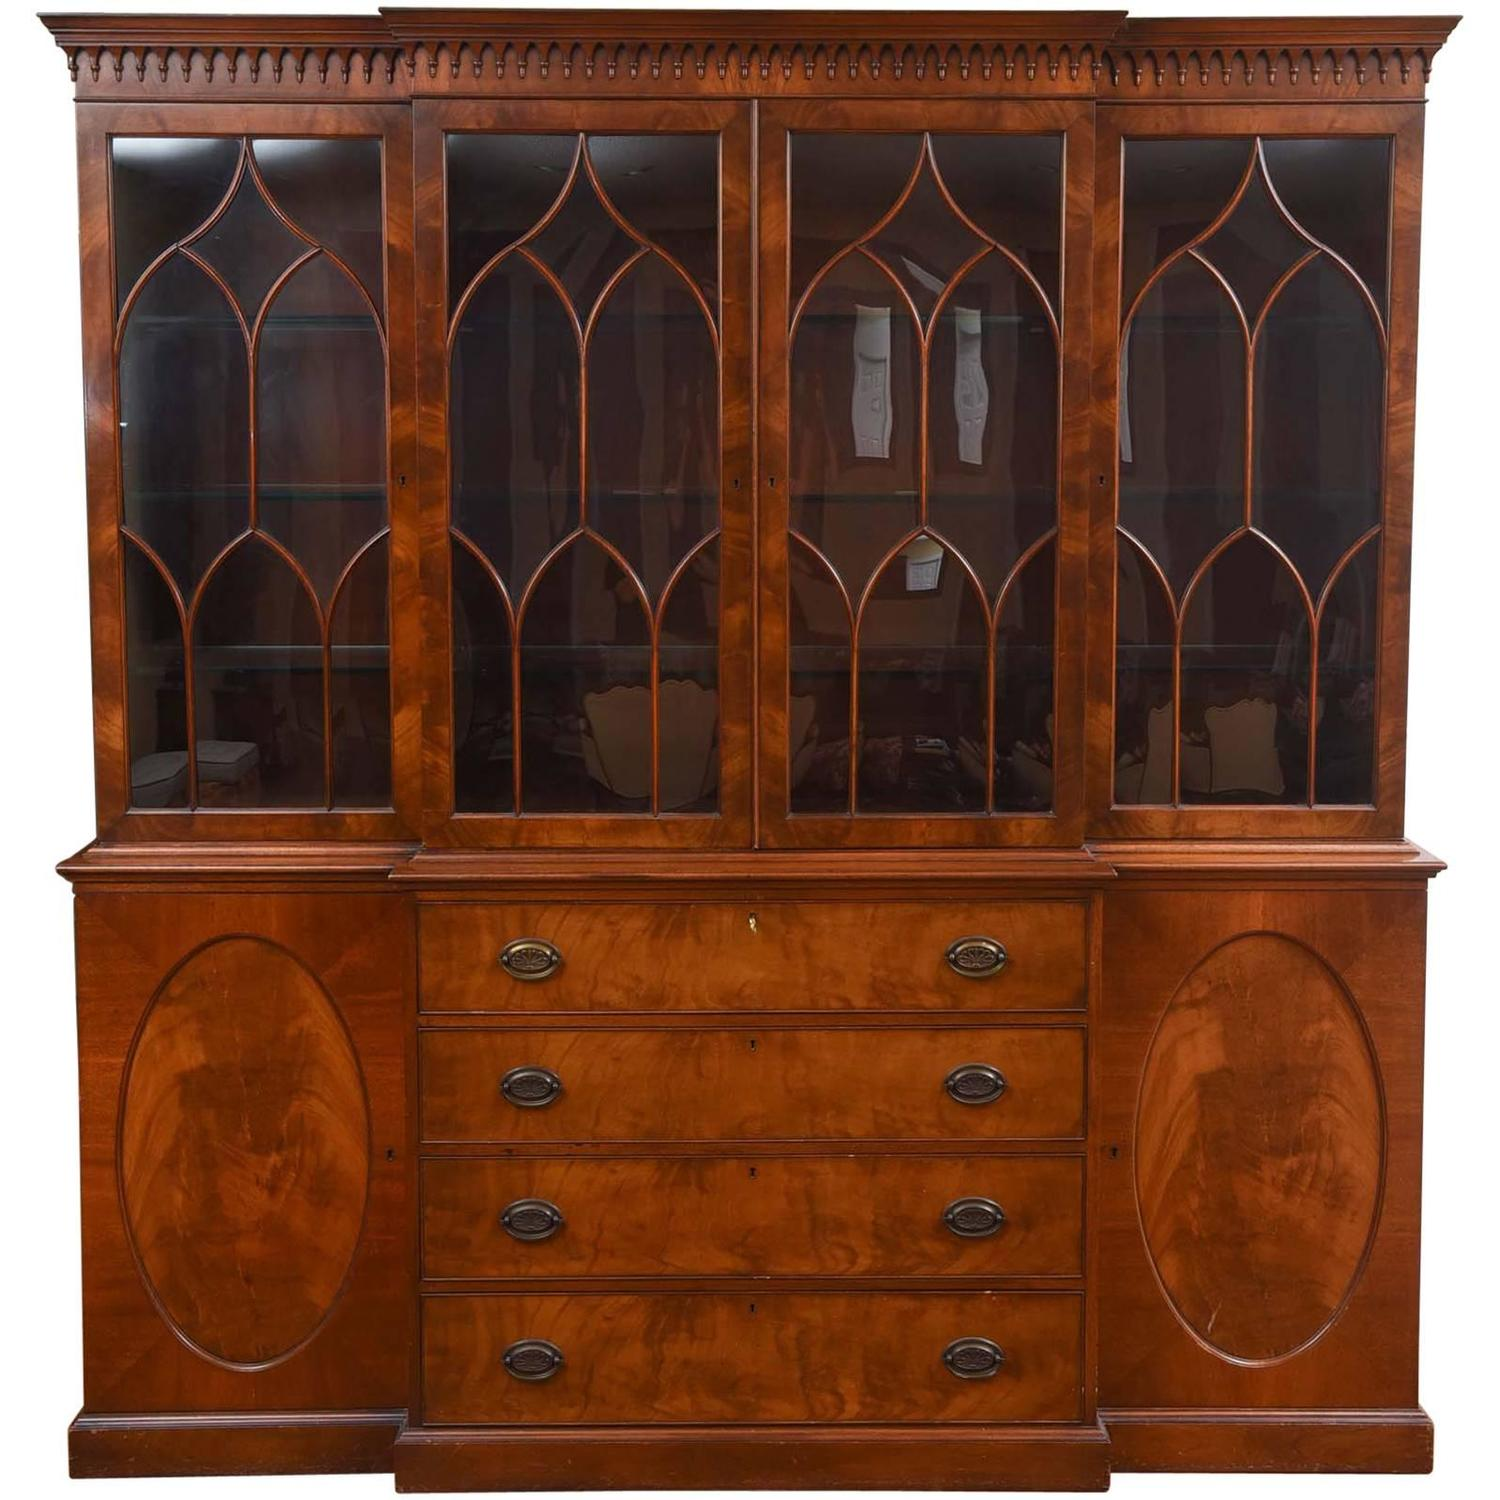 Massive Custom Semi Antique Breakfront Cabinet Mahogany Inlaid with Great  Detail For Sale at 1stdibs - Massive Custom Semi Antique Breakfront Cabinet Mahogany Inlaid